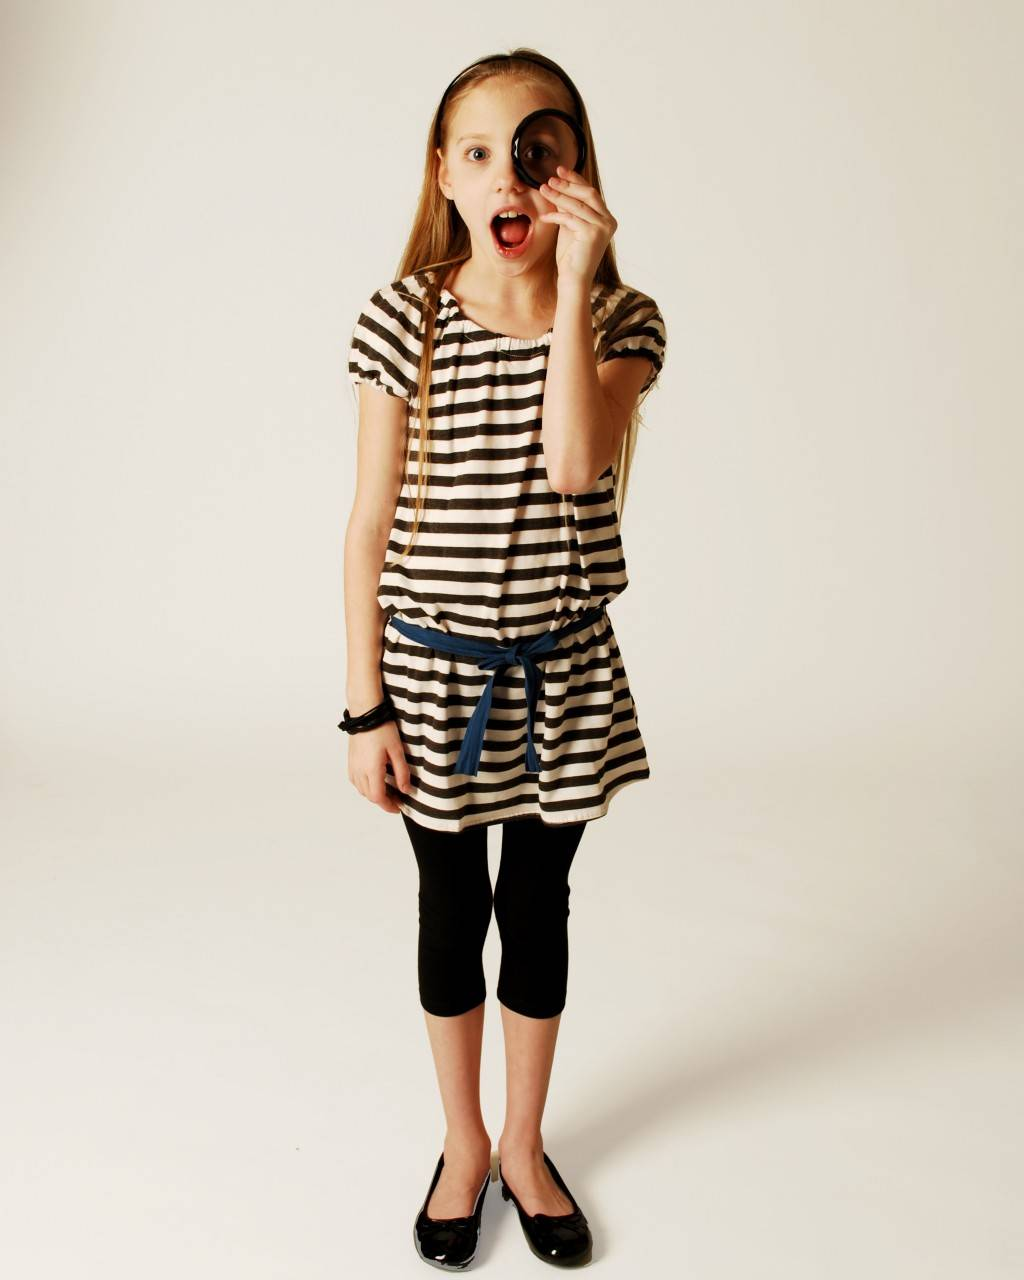 Kids urban clothing stores online